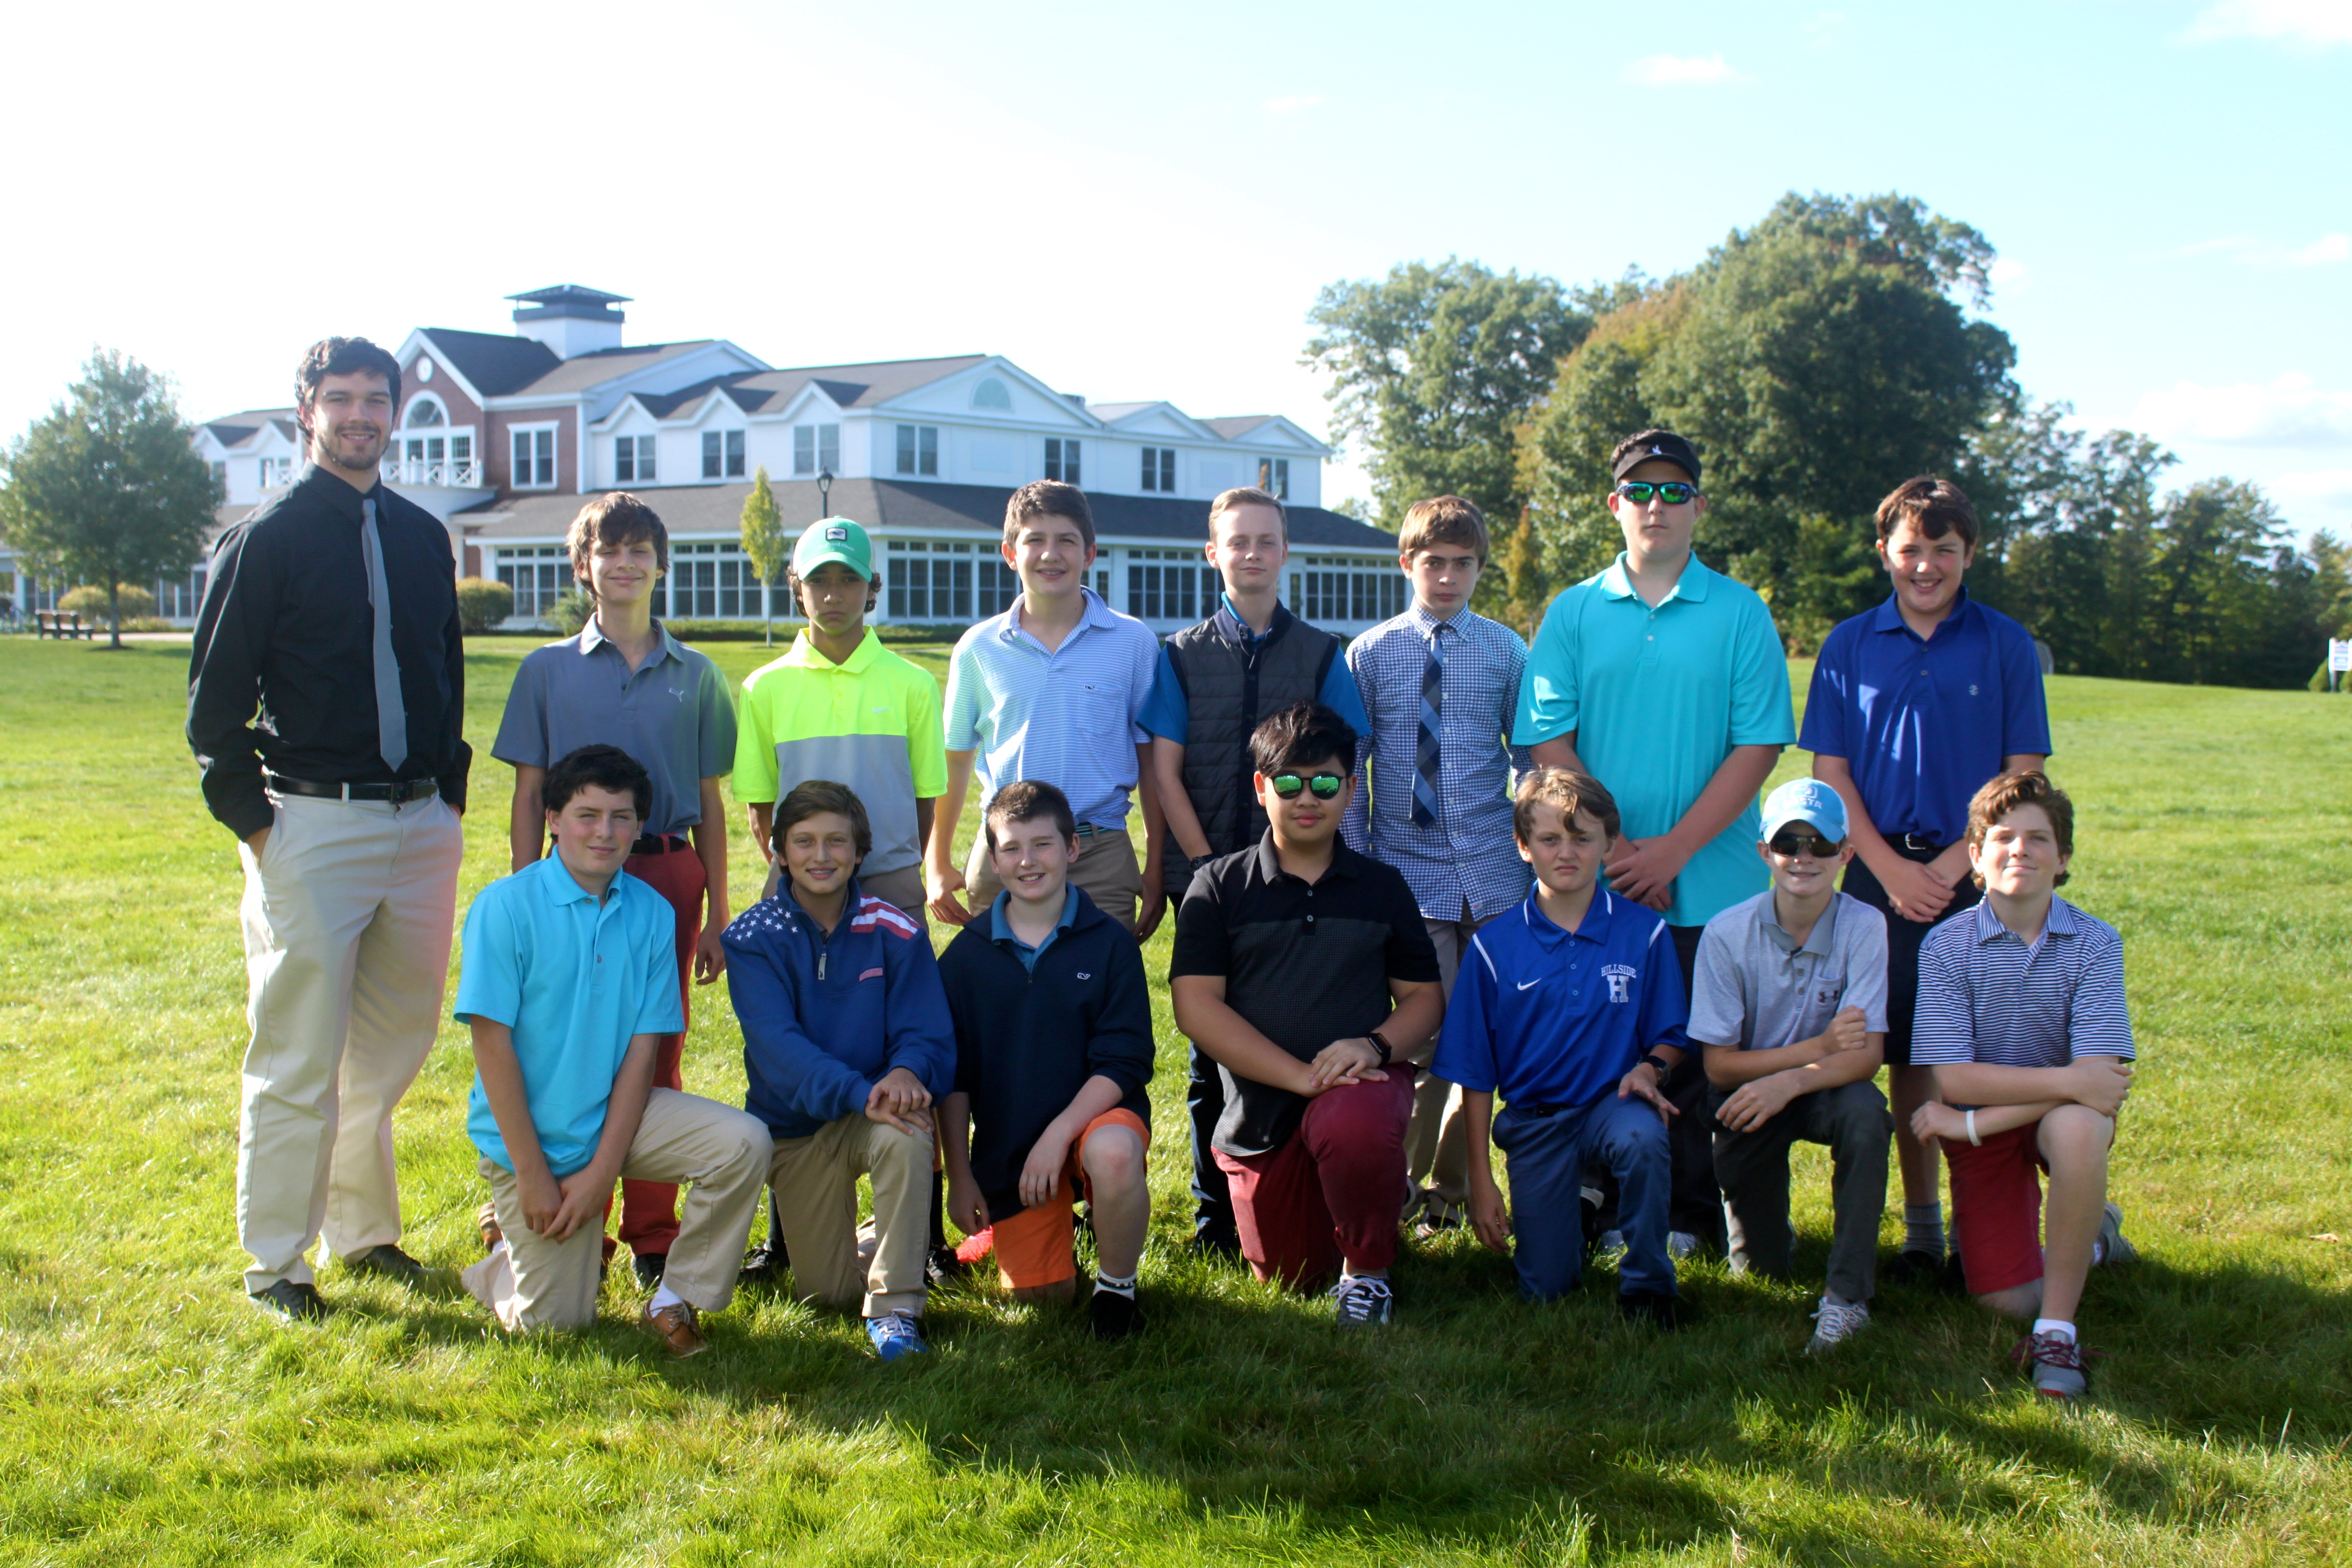 Hillside School Golf team